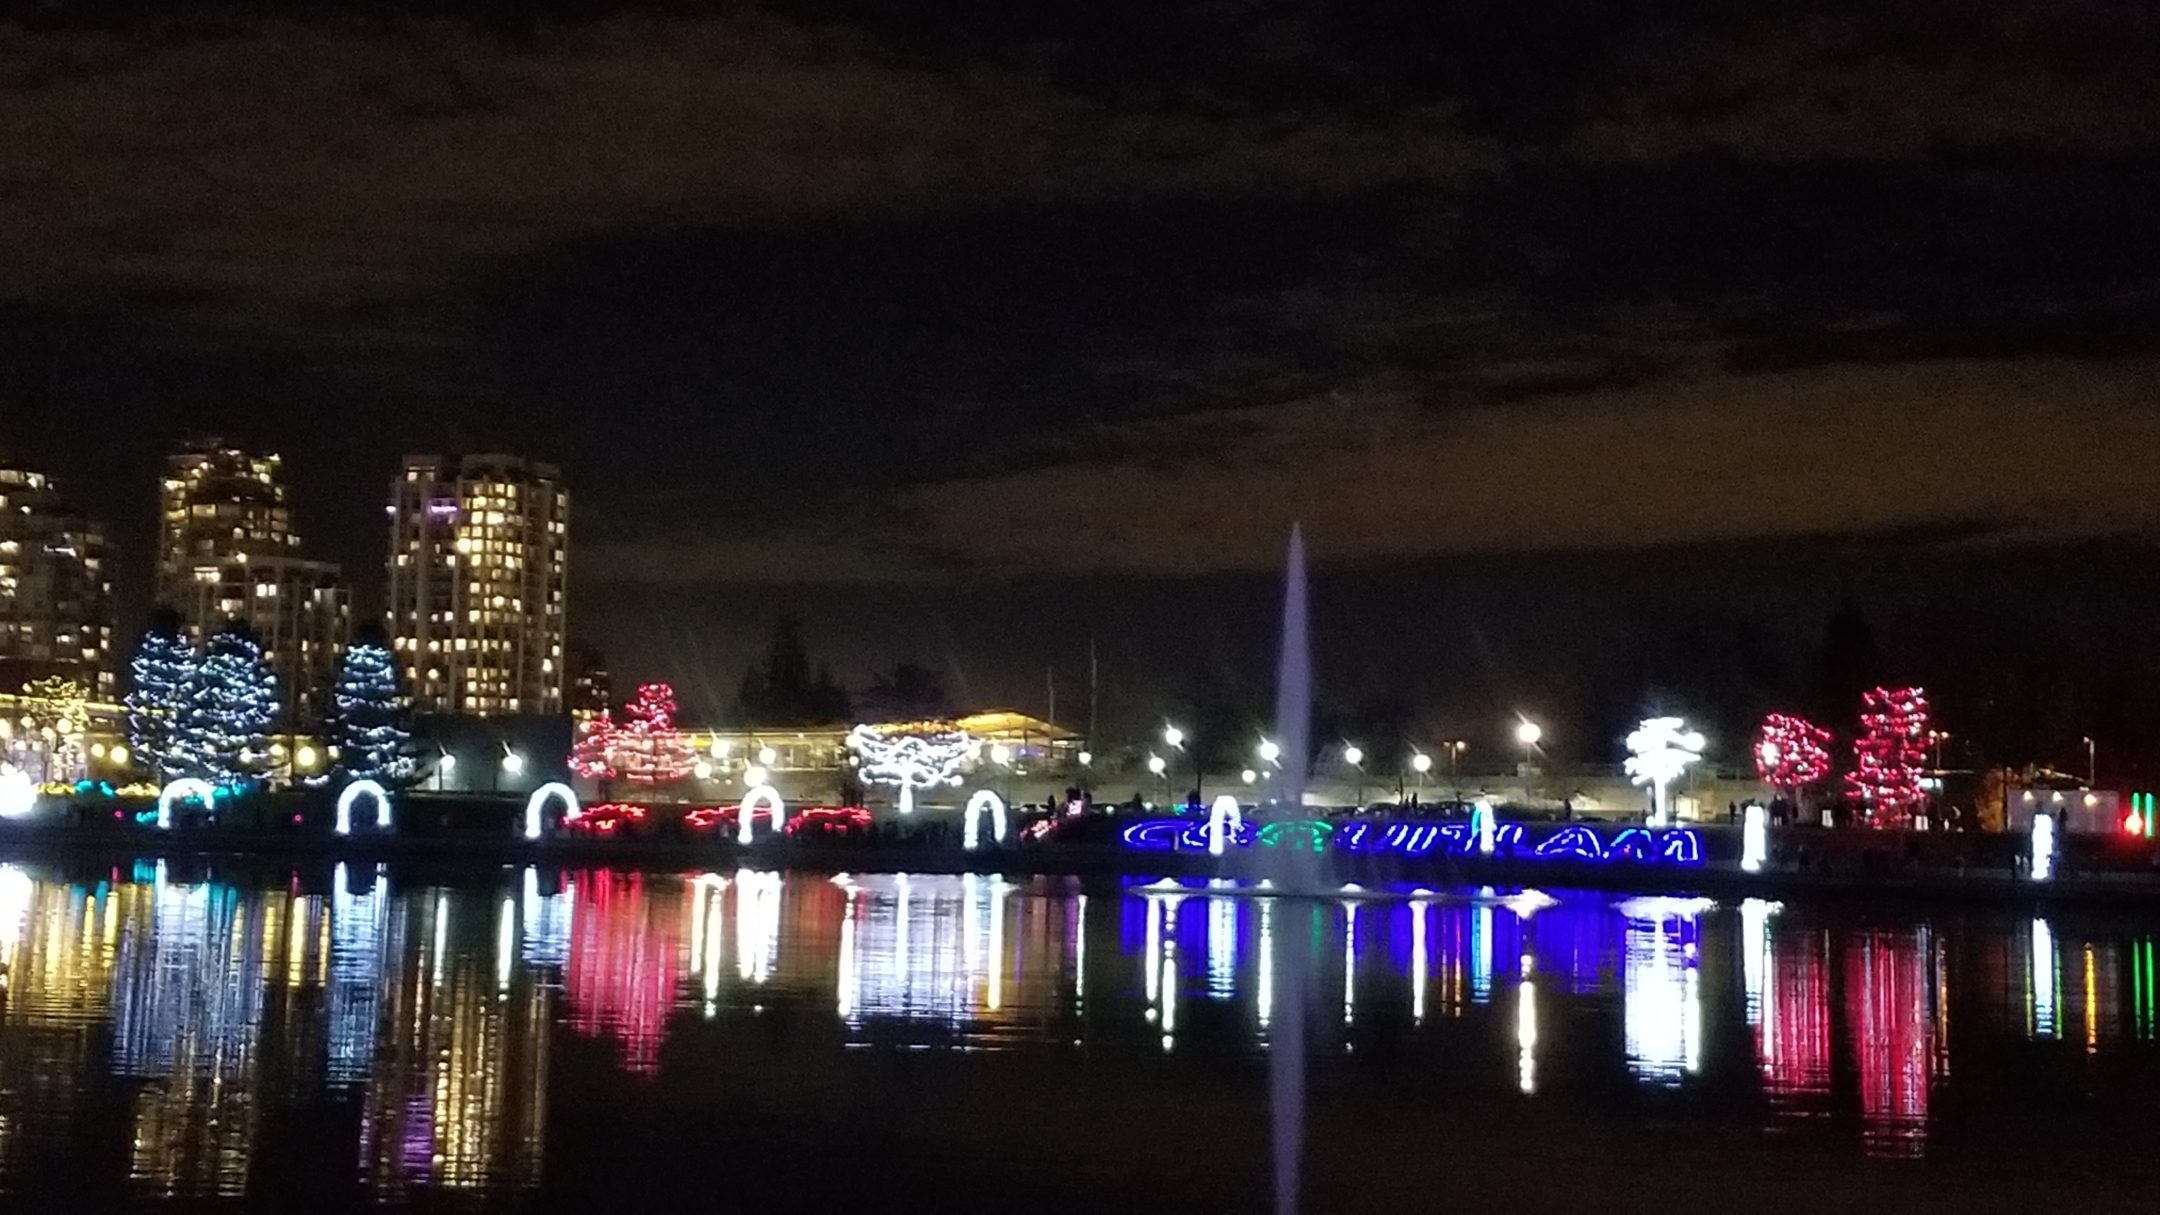 Lights at Lafarge Park, Coquitlam, BC (6)